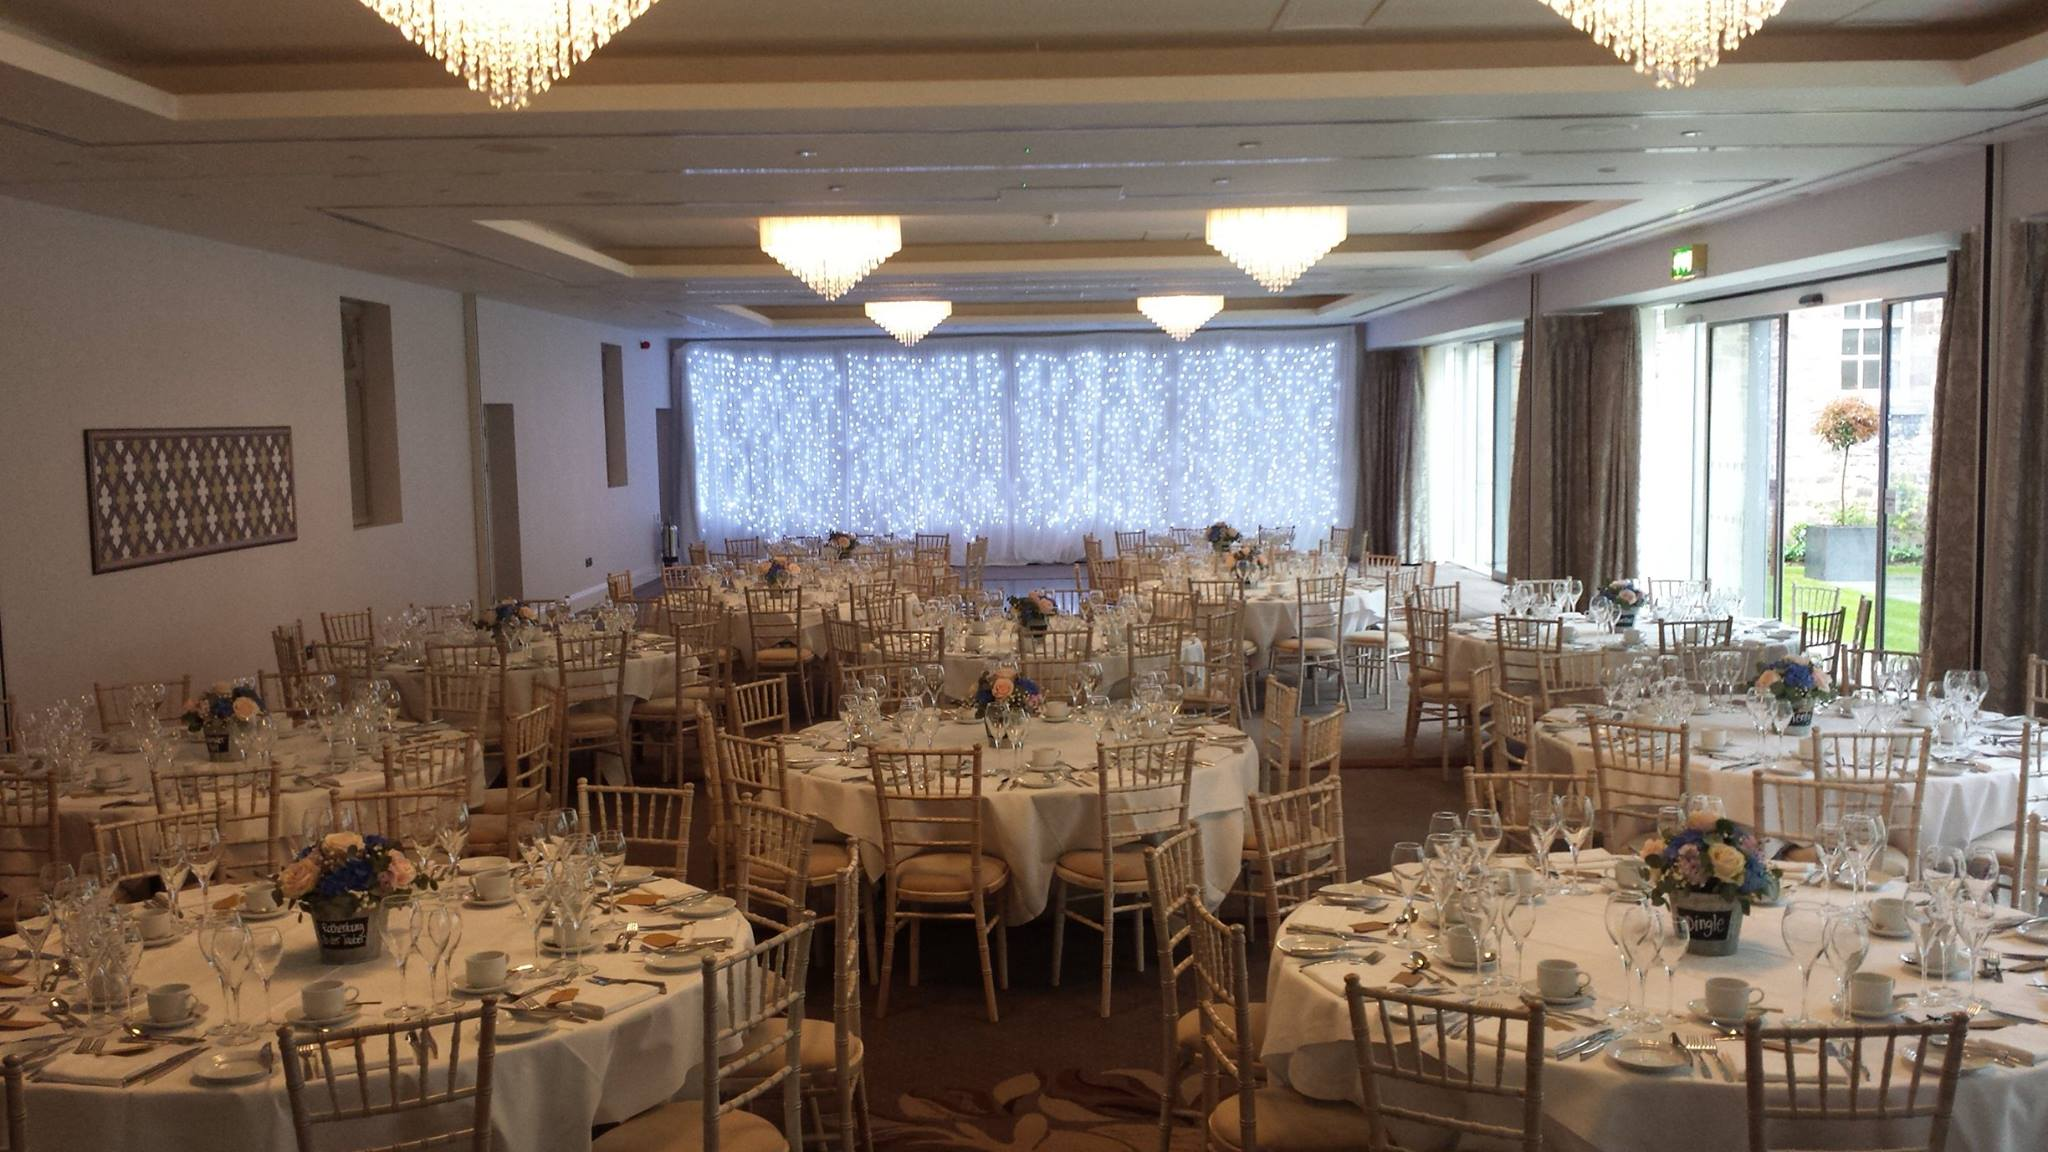 wedding chair covers pontypridd lightest fishing reviews gallery pictures south wales venues hensol castle